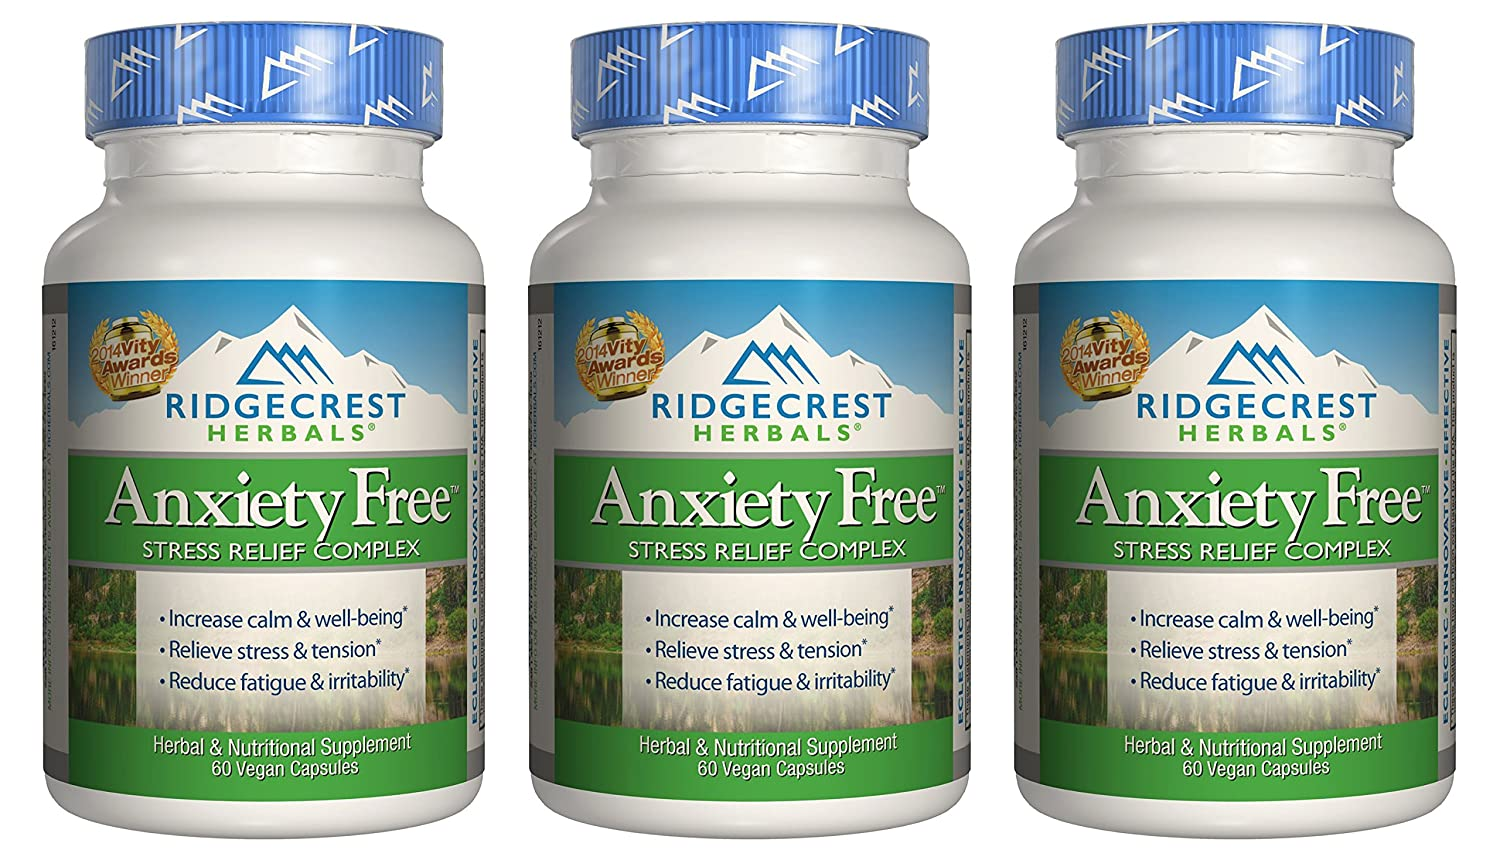 Ridgecrest Anxiety-Free, 60 Count 3 Pack